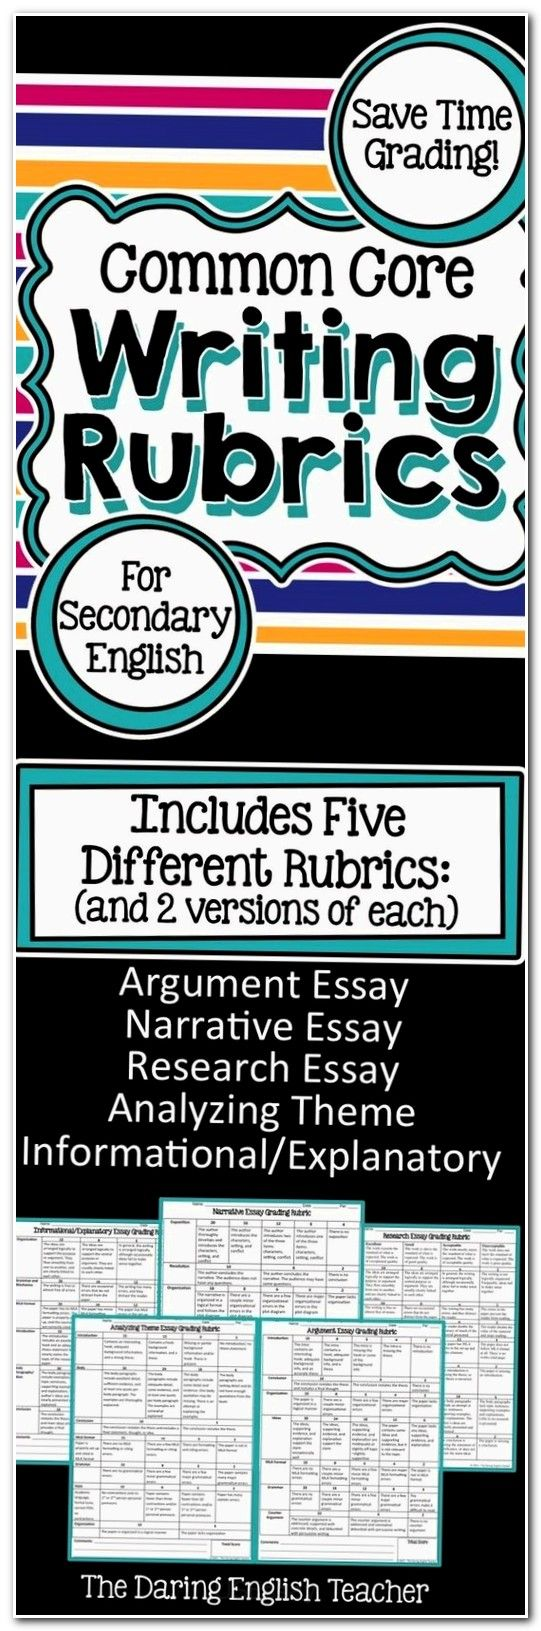 #essay #wrightessay biology essay questions, career narrative essay, how to create a thesis outline, how to write research methodology in thesis, abortion research paper outline example, persuasive text introduction, example of research design in thesis, passage writing tips, writing a proposal for a job, recent research paper topics, write a document online, subjects to compare and contrast, graduating high school essay, custom essay papers, apa format essay example